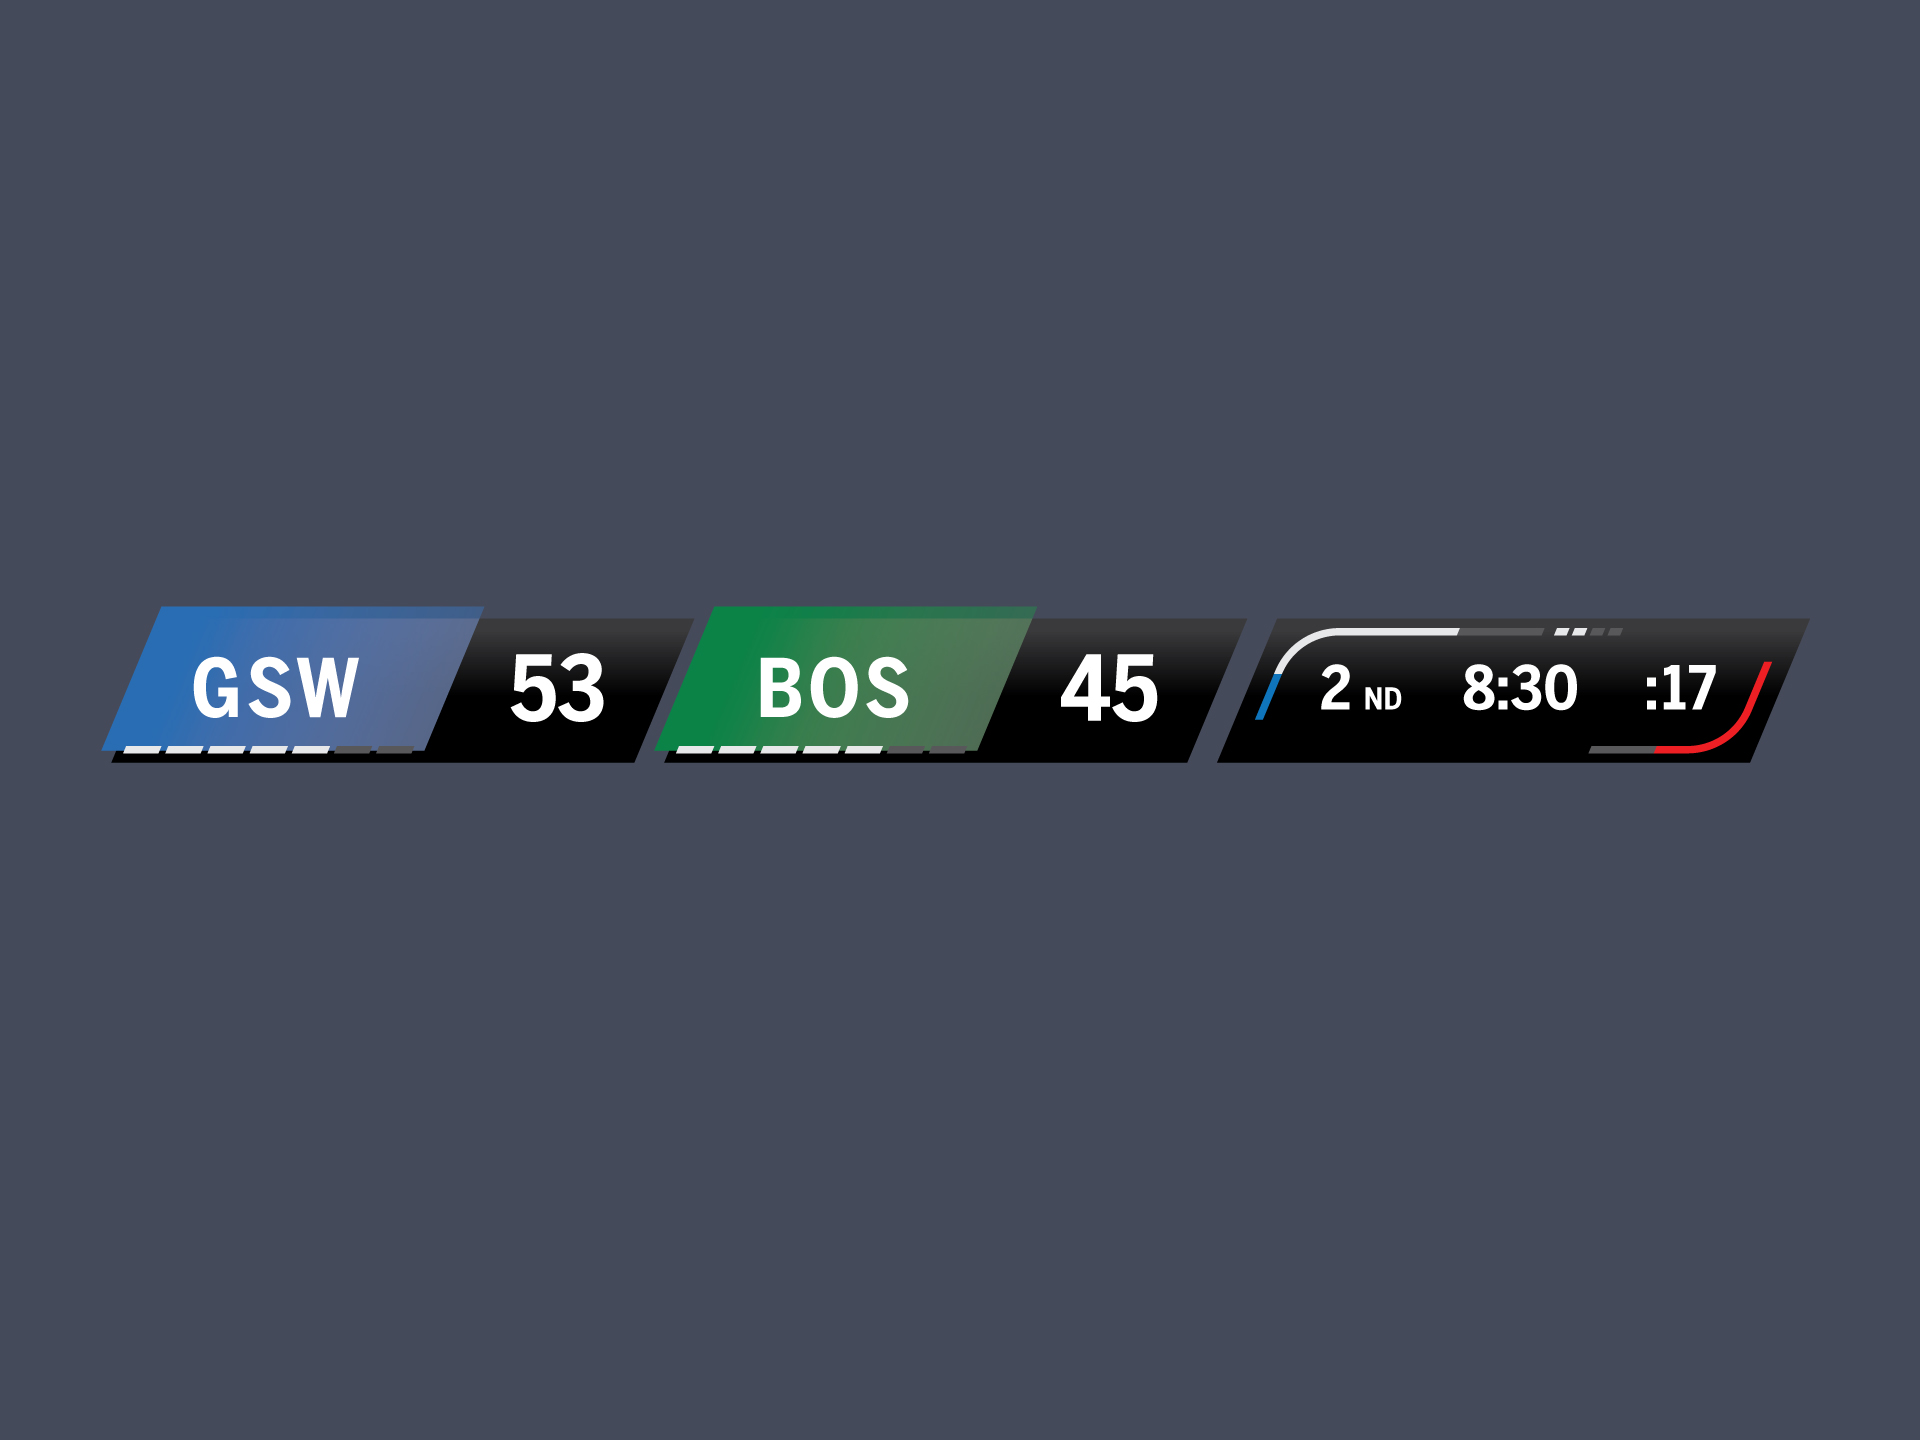 Countdown-Timer-and-score.jpg